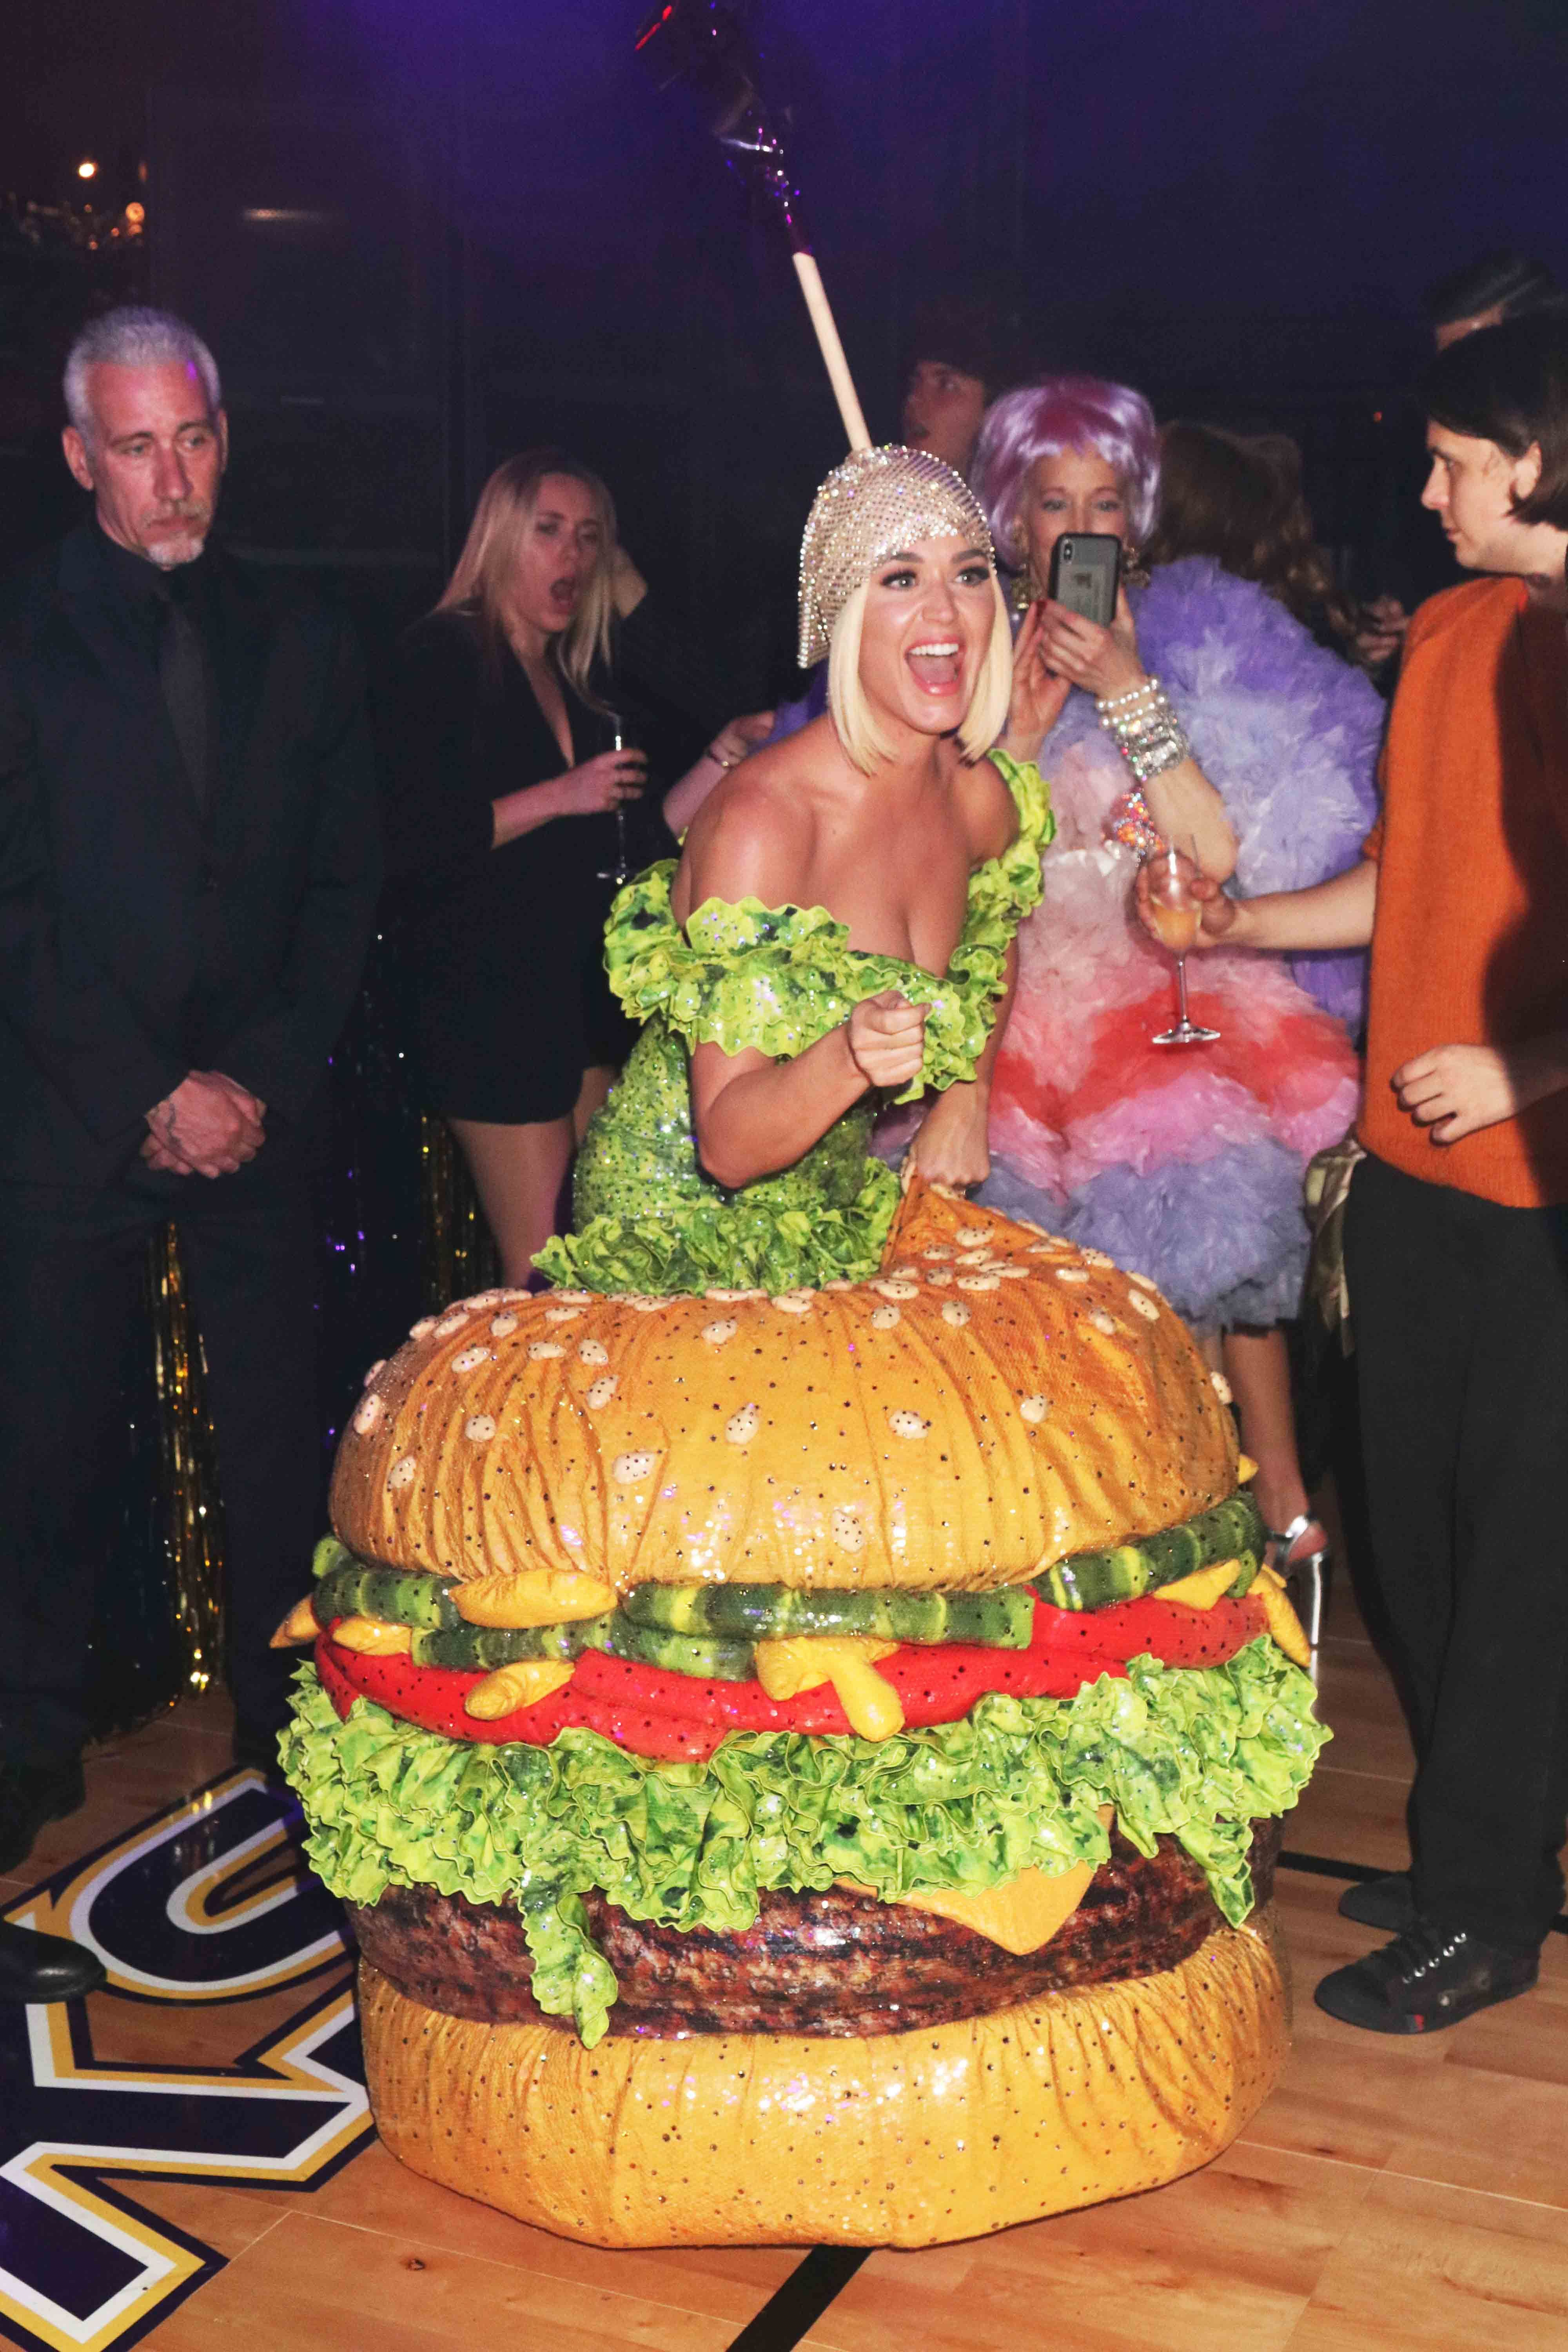 Katy Perry If you can't dress as a cheeseburger for the Met Gala after-party, then when can you?